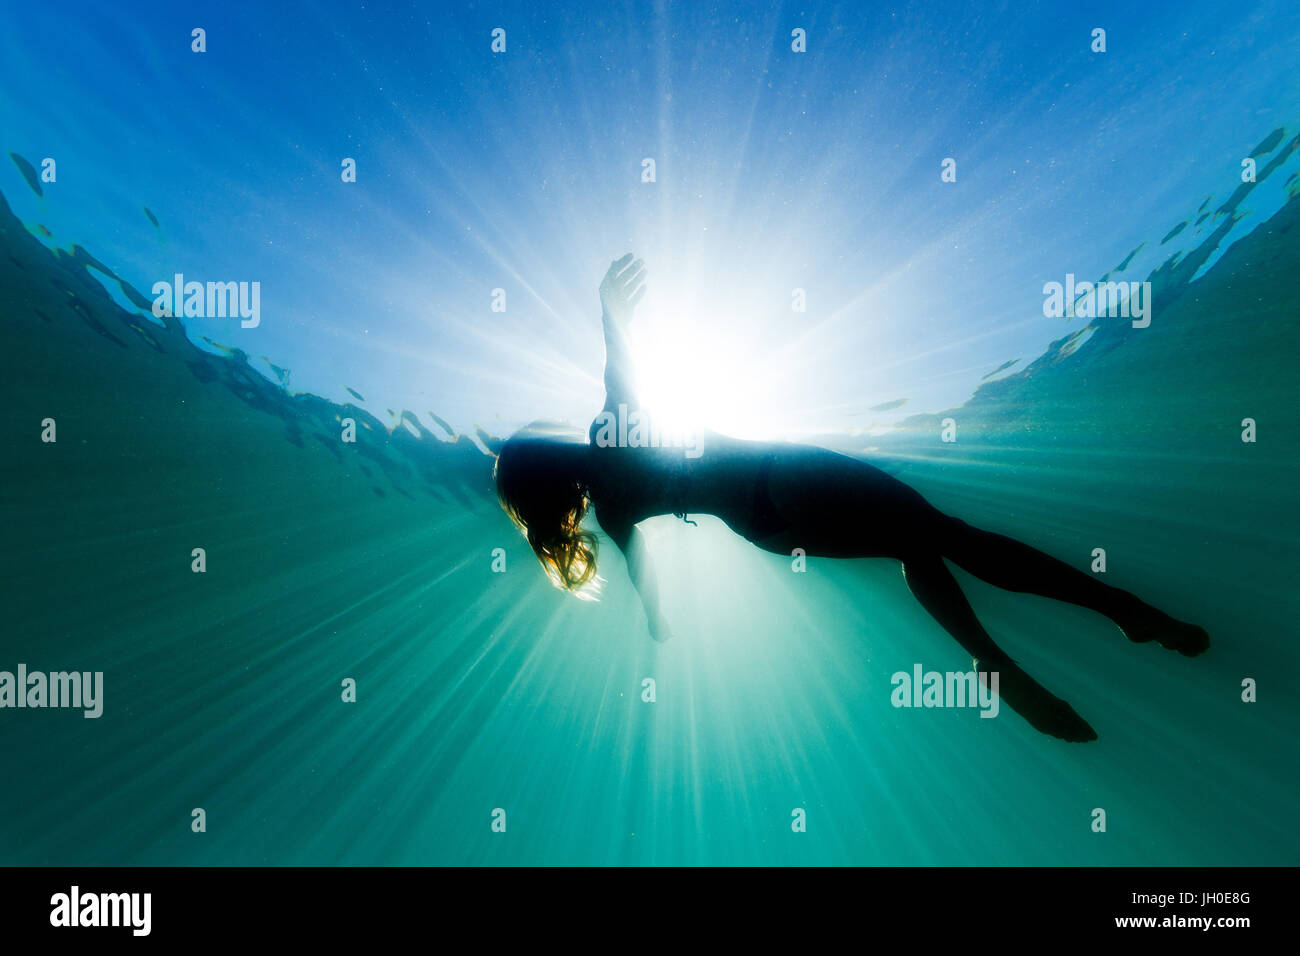 A beautiful woman floats on her back in the ocean as she is surrounded be bright ethereal light and sun rays. Stock Photo